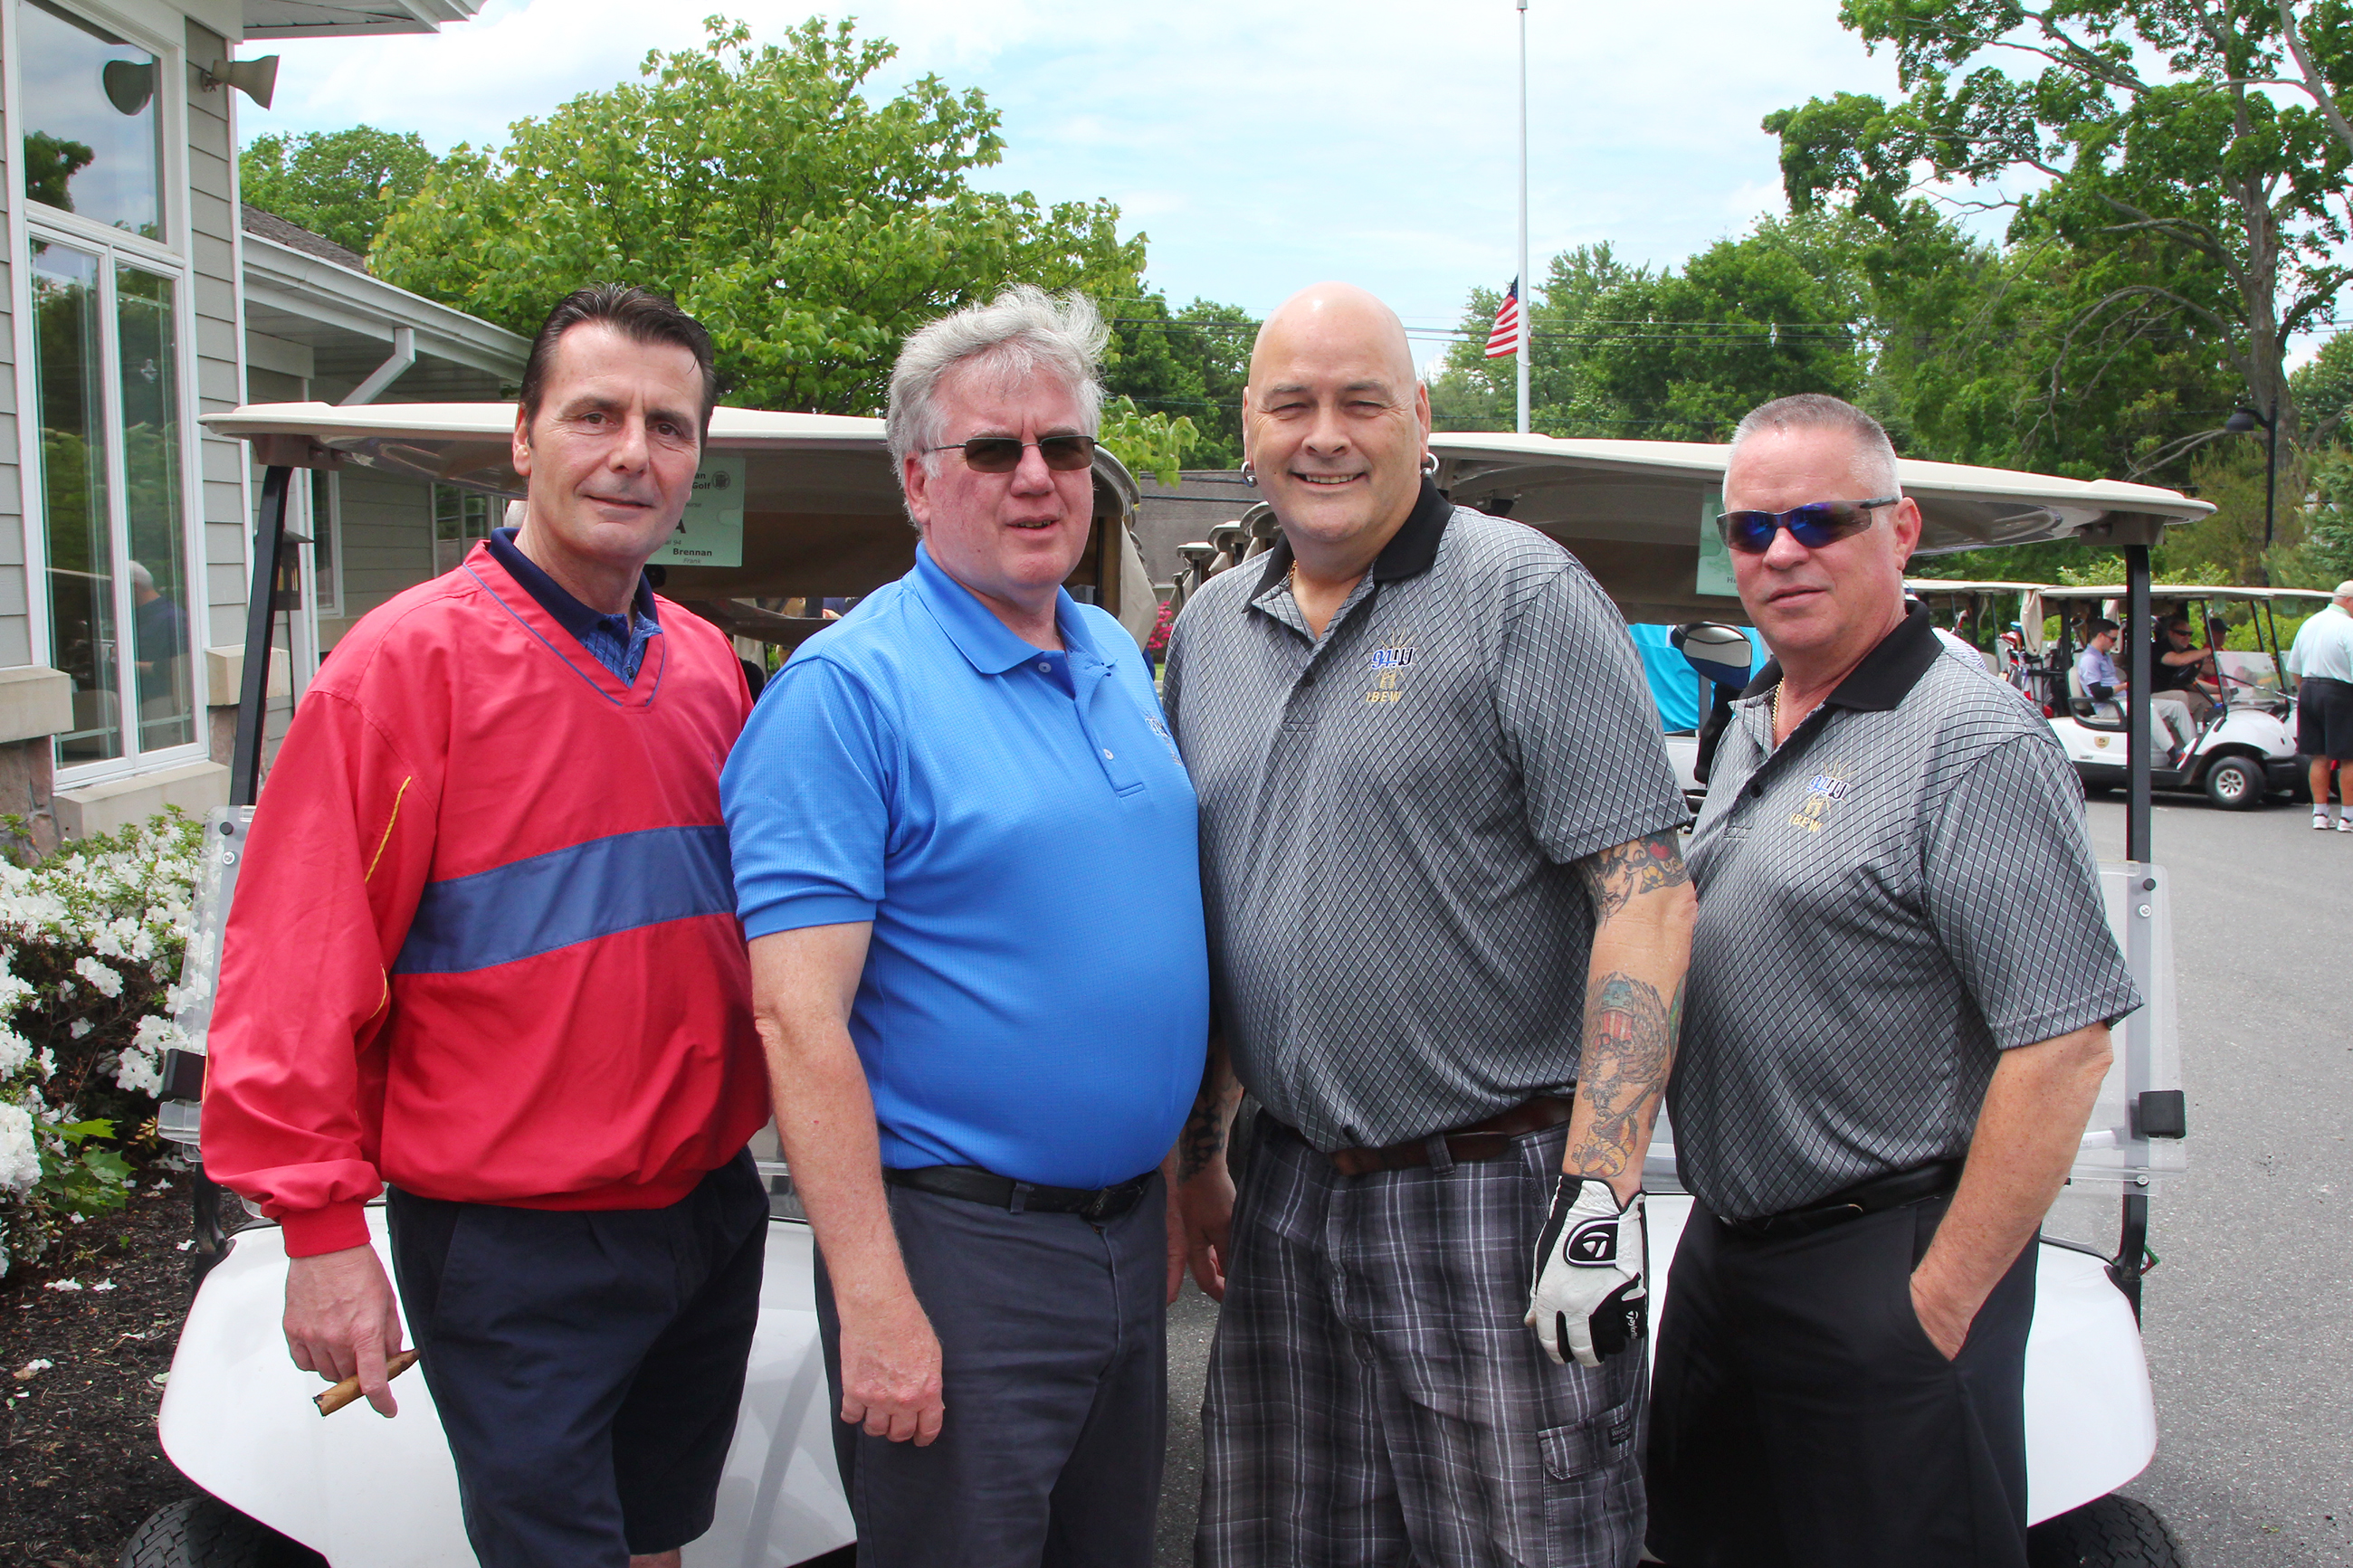 Wayne P. DeAngelo Golf Outing, May 24, 2017, Mountain View Golf Club. IBEW local 94 L-R, Bud Thoman, Frank Brennan, Moe Hufsey and Bob Weber.